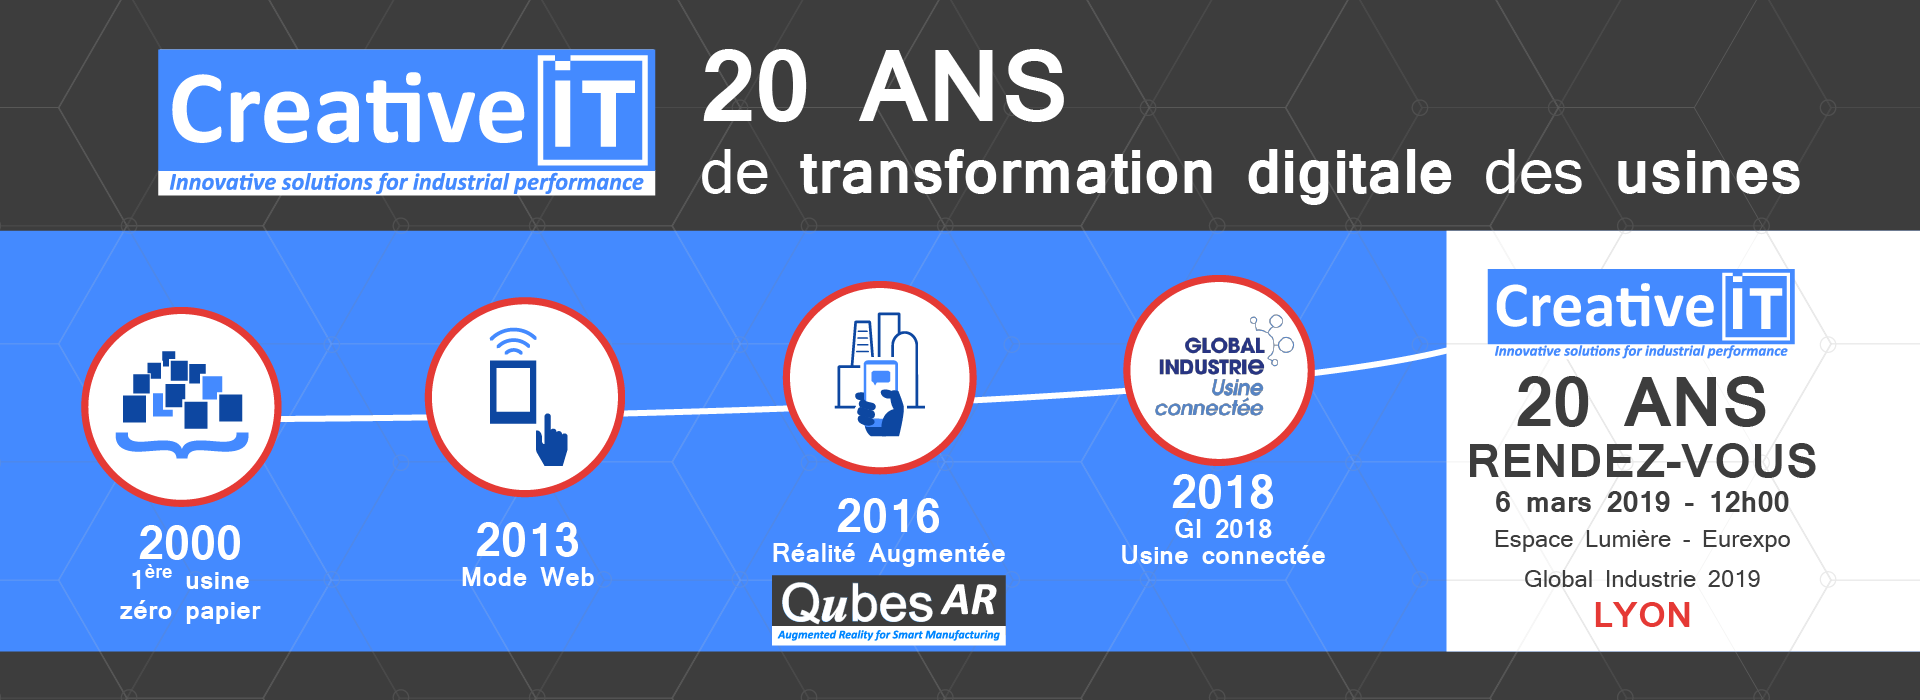 "Creative IT – 20 ans de transformation digitale des usines"" est verrouillé Creative IT – 20 ans de transformation digitale des usines"